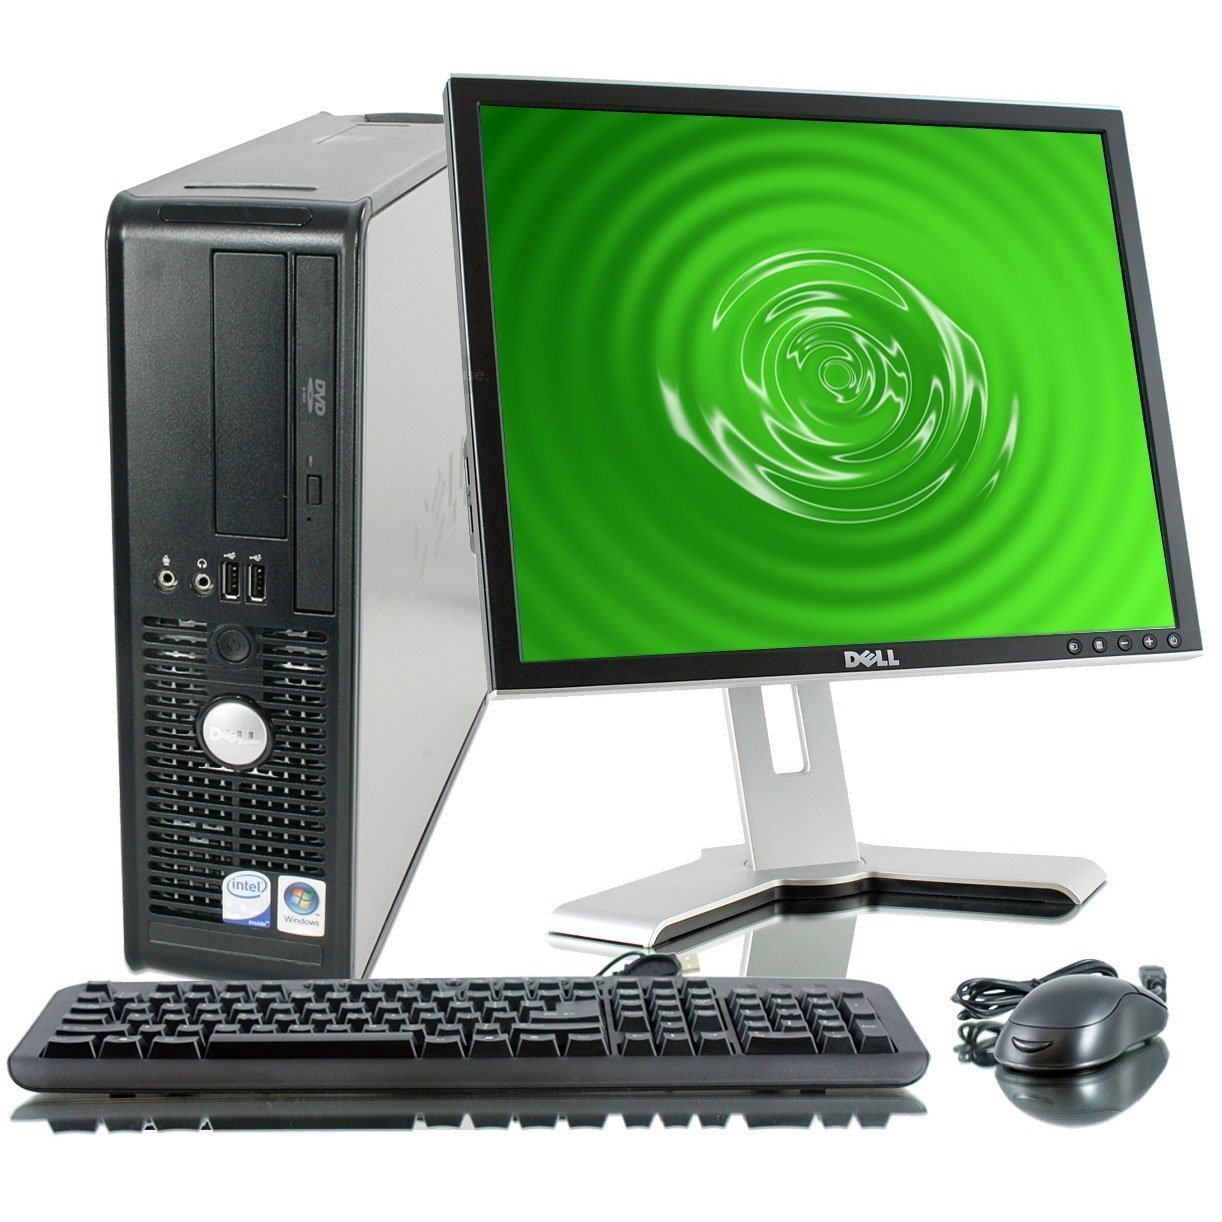 Enjoyable Dell Optiplex Desktop Complete Computer Package With Windows 10 Home Keyboard Mouse 17In Lcd Monitor Brands May Vary Renewed Download Free Architecture Designs Terchretrmadebymaigaardcom